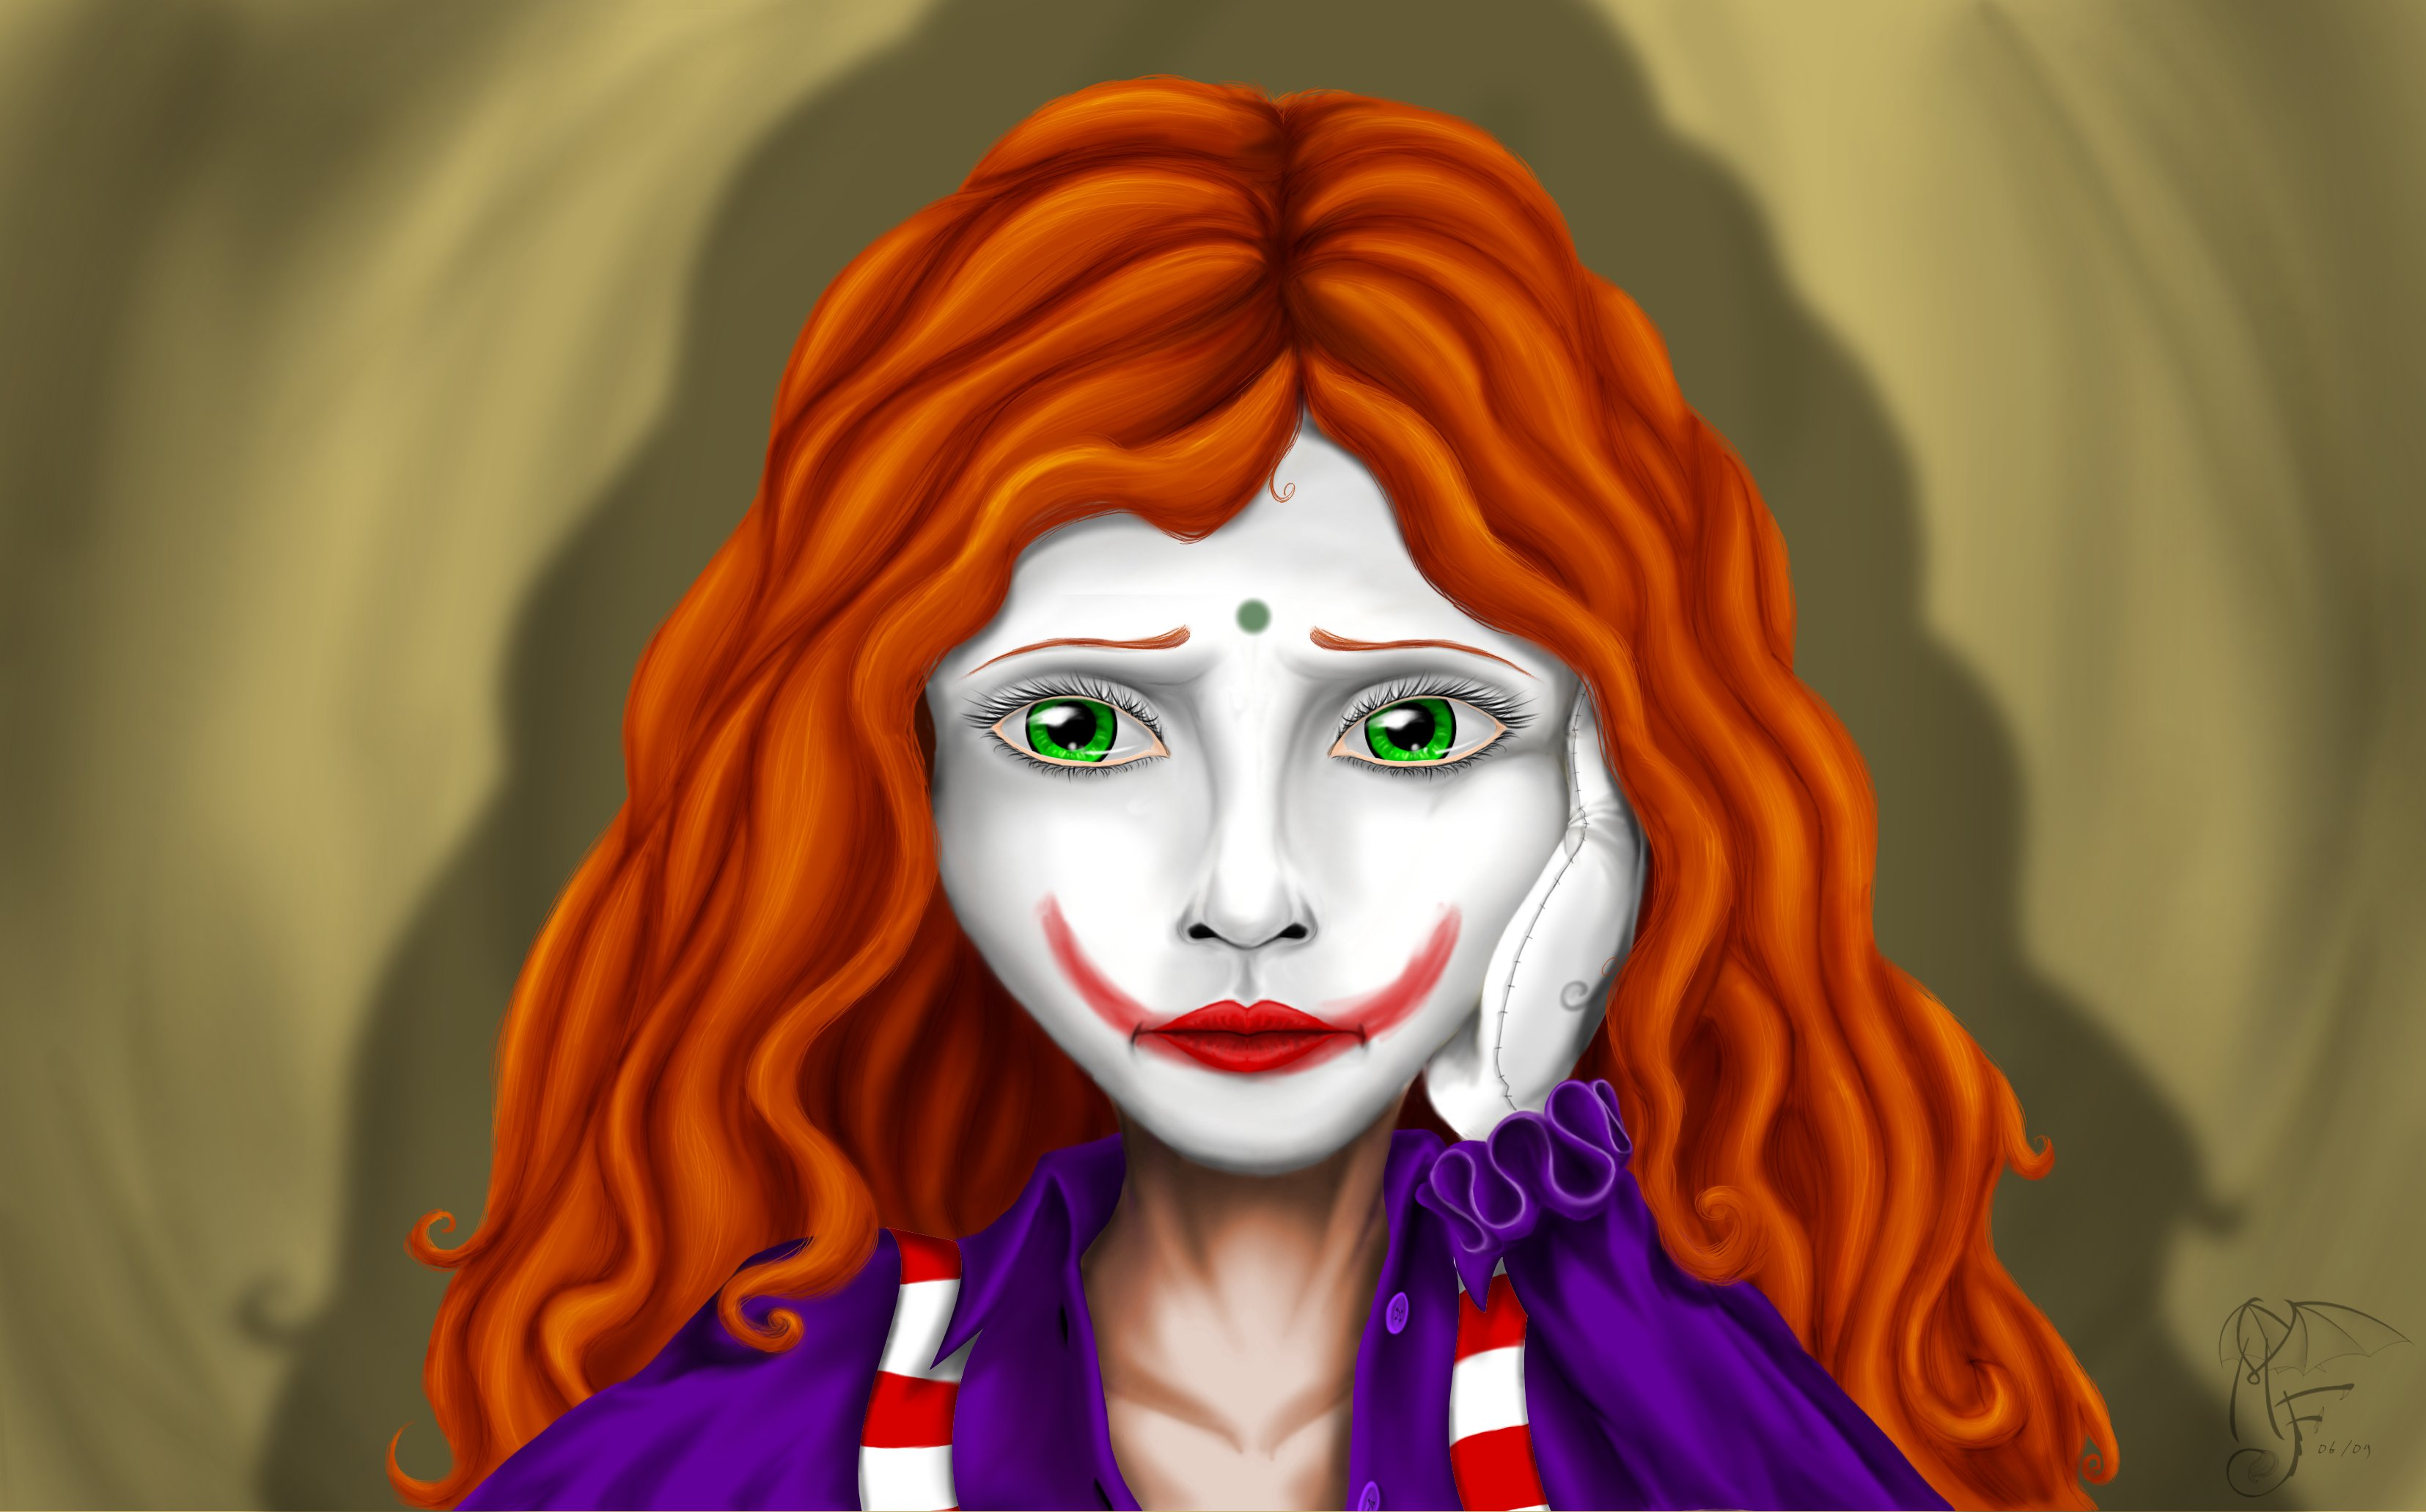 Sad_Clown_by_MARTY_iceAngel